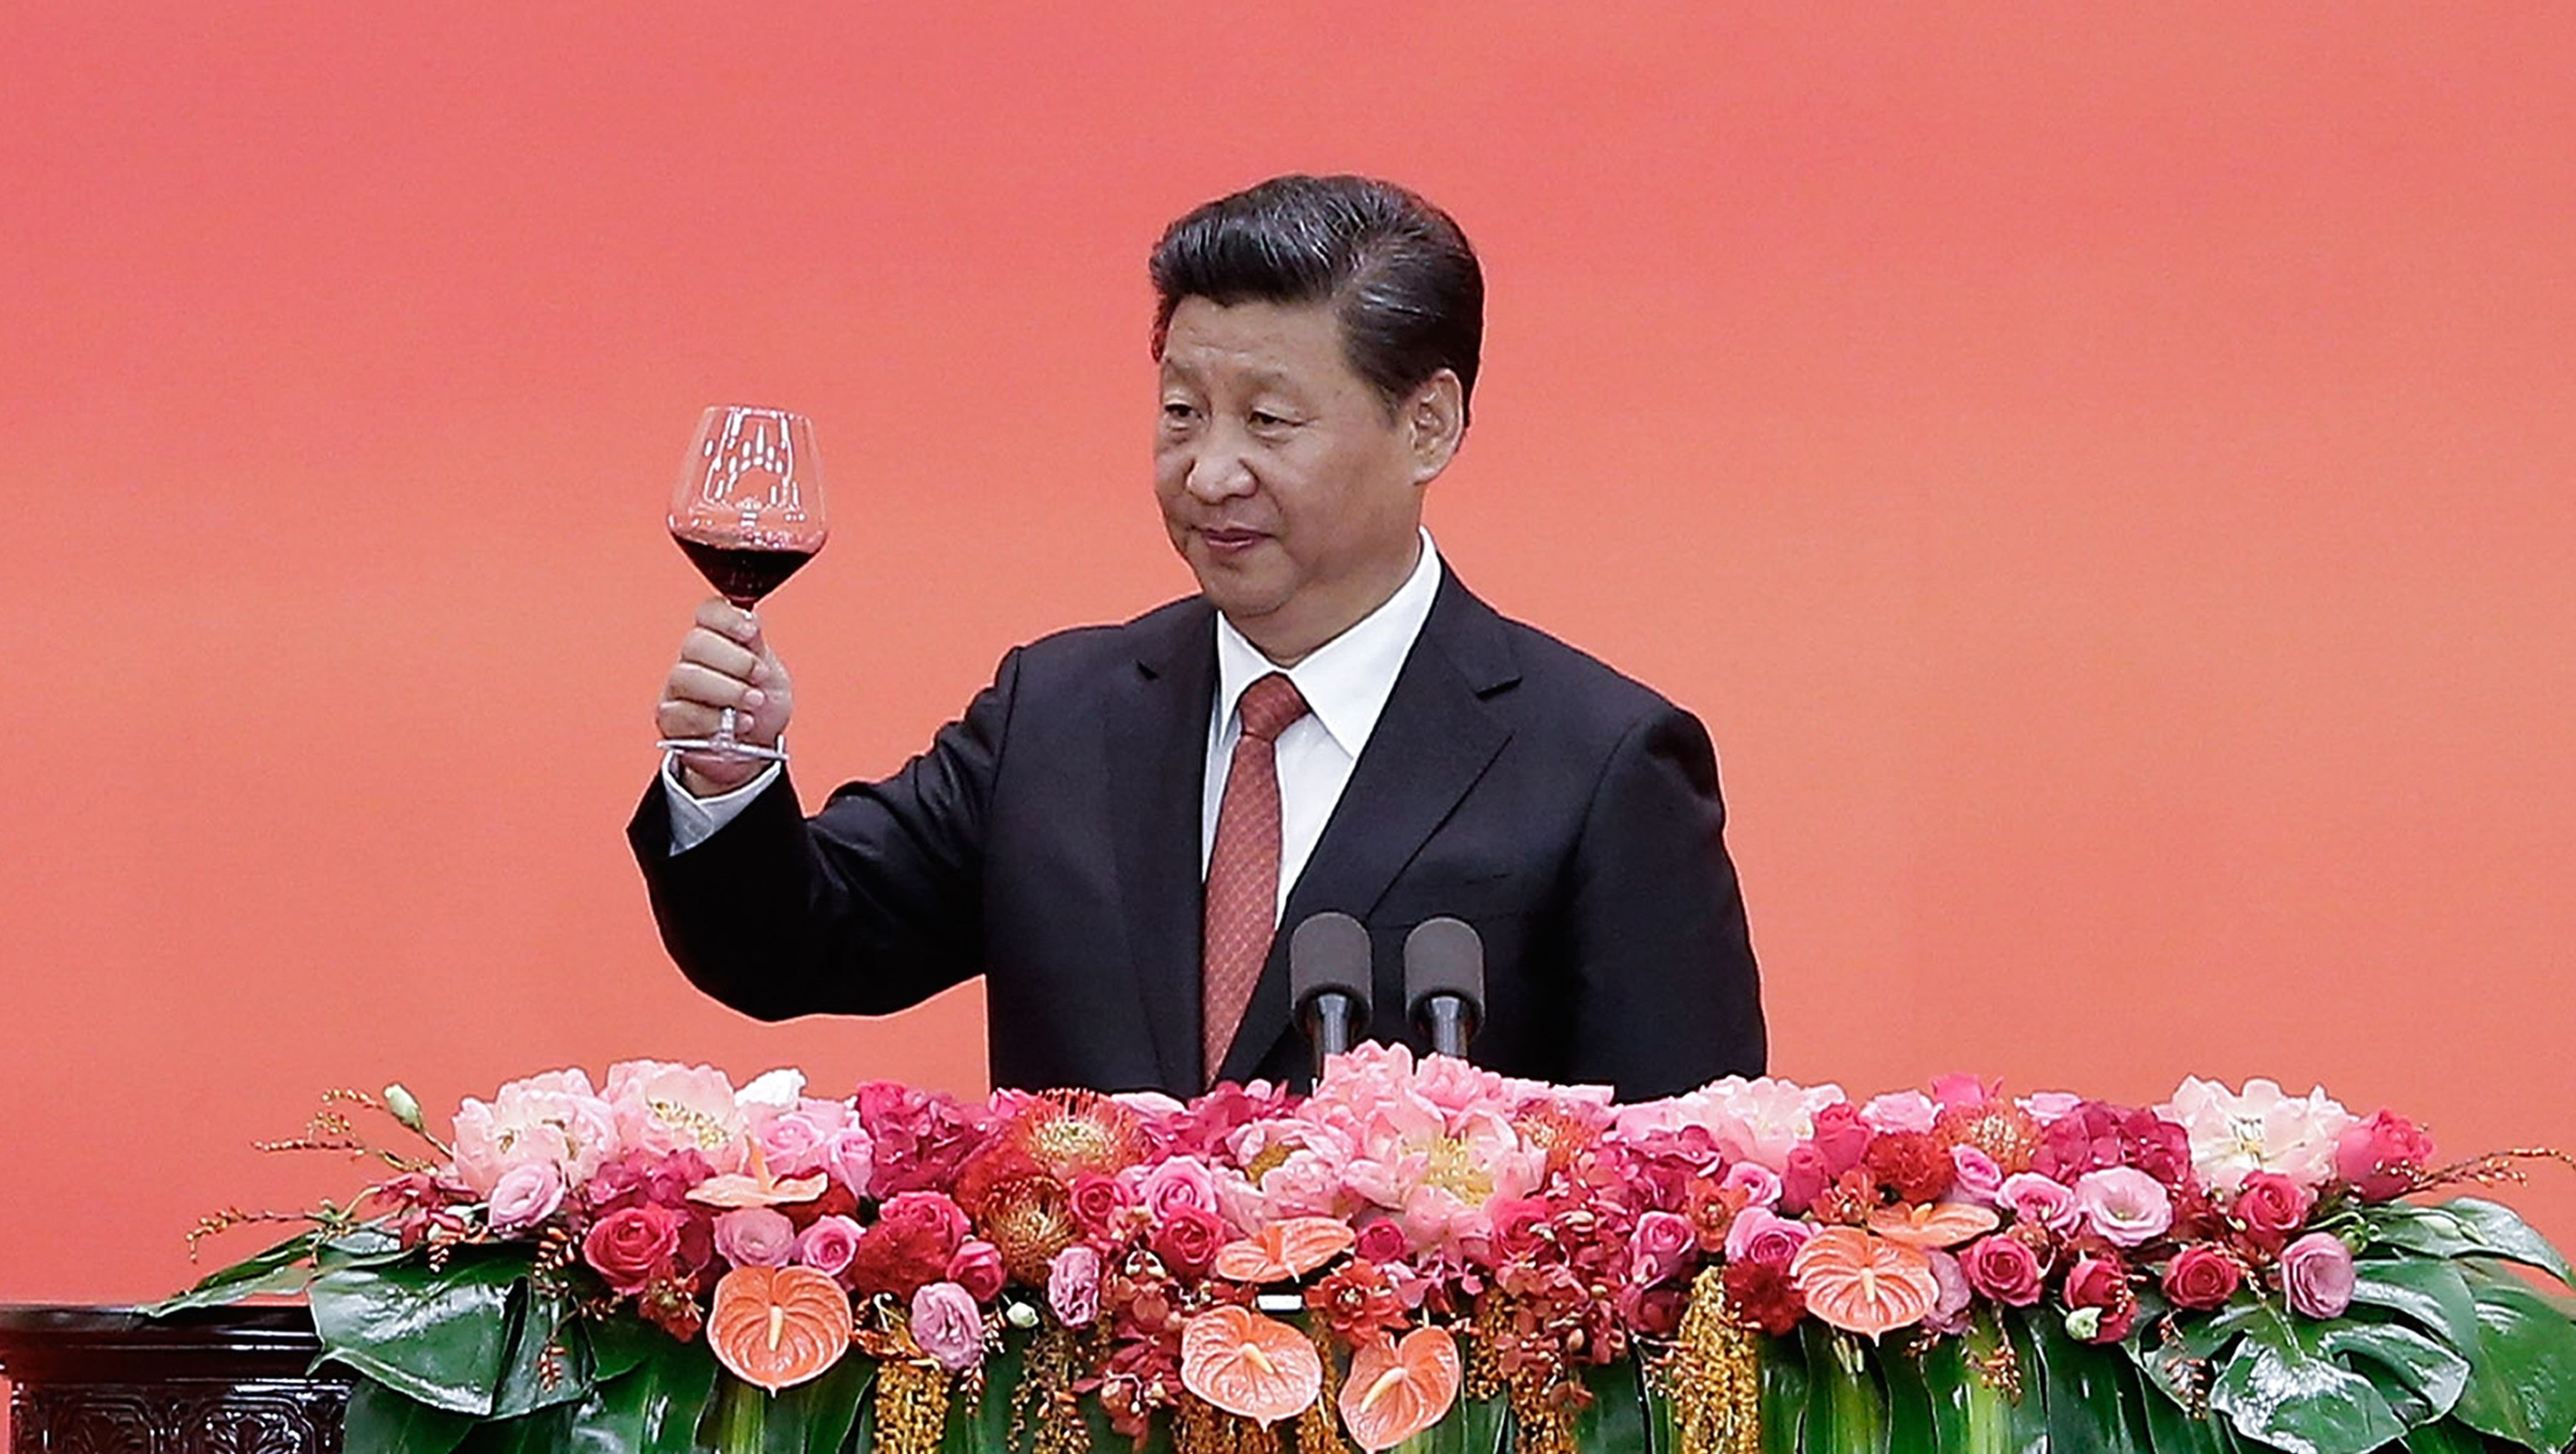 Chinese President Xi Jinping offers a toast after delivering a speech during a reception to mark the 70th anniversary of Japan's surrender during World War II in Beijing, Thursday, Sept. 3, 2015. (Lintao Zhang